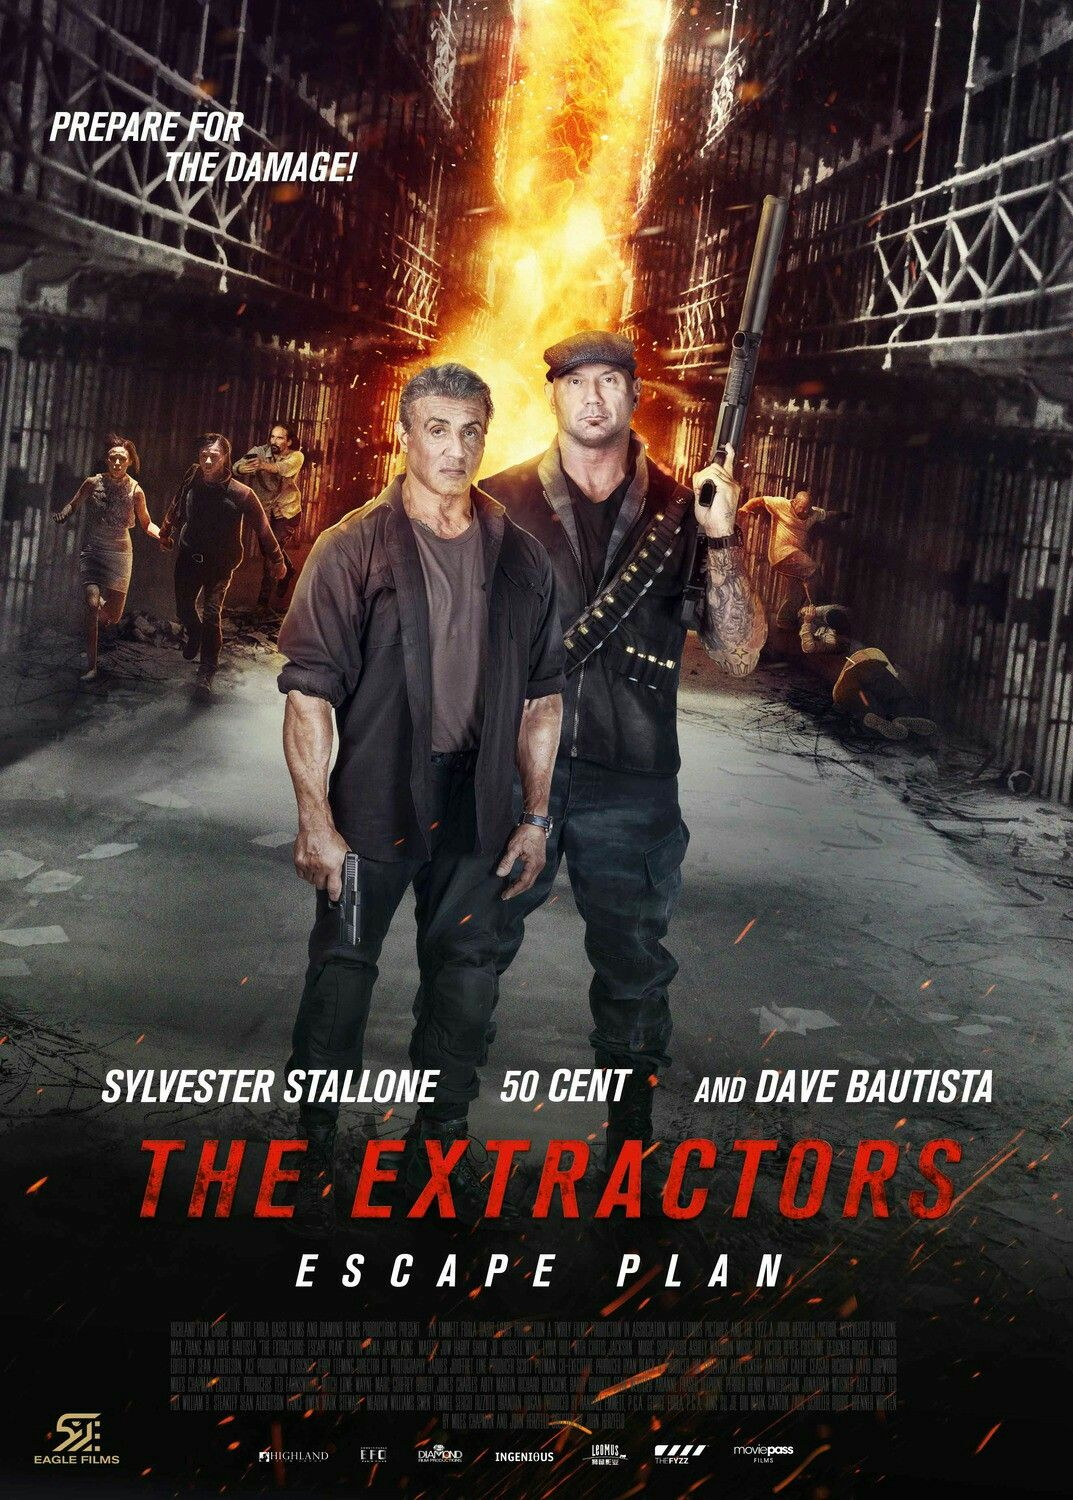 The Poster For The Action Thriller Escape Plan 3 The Extractors